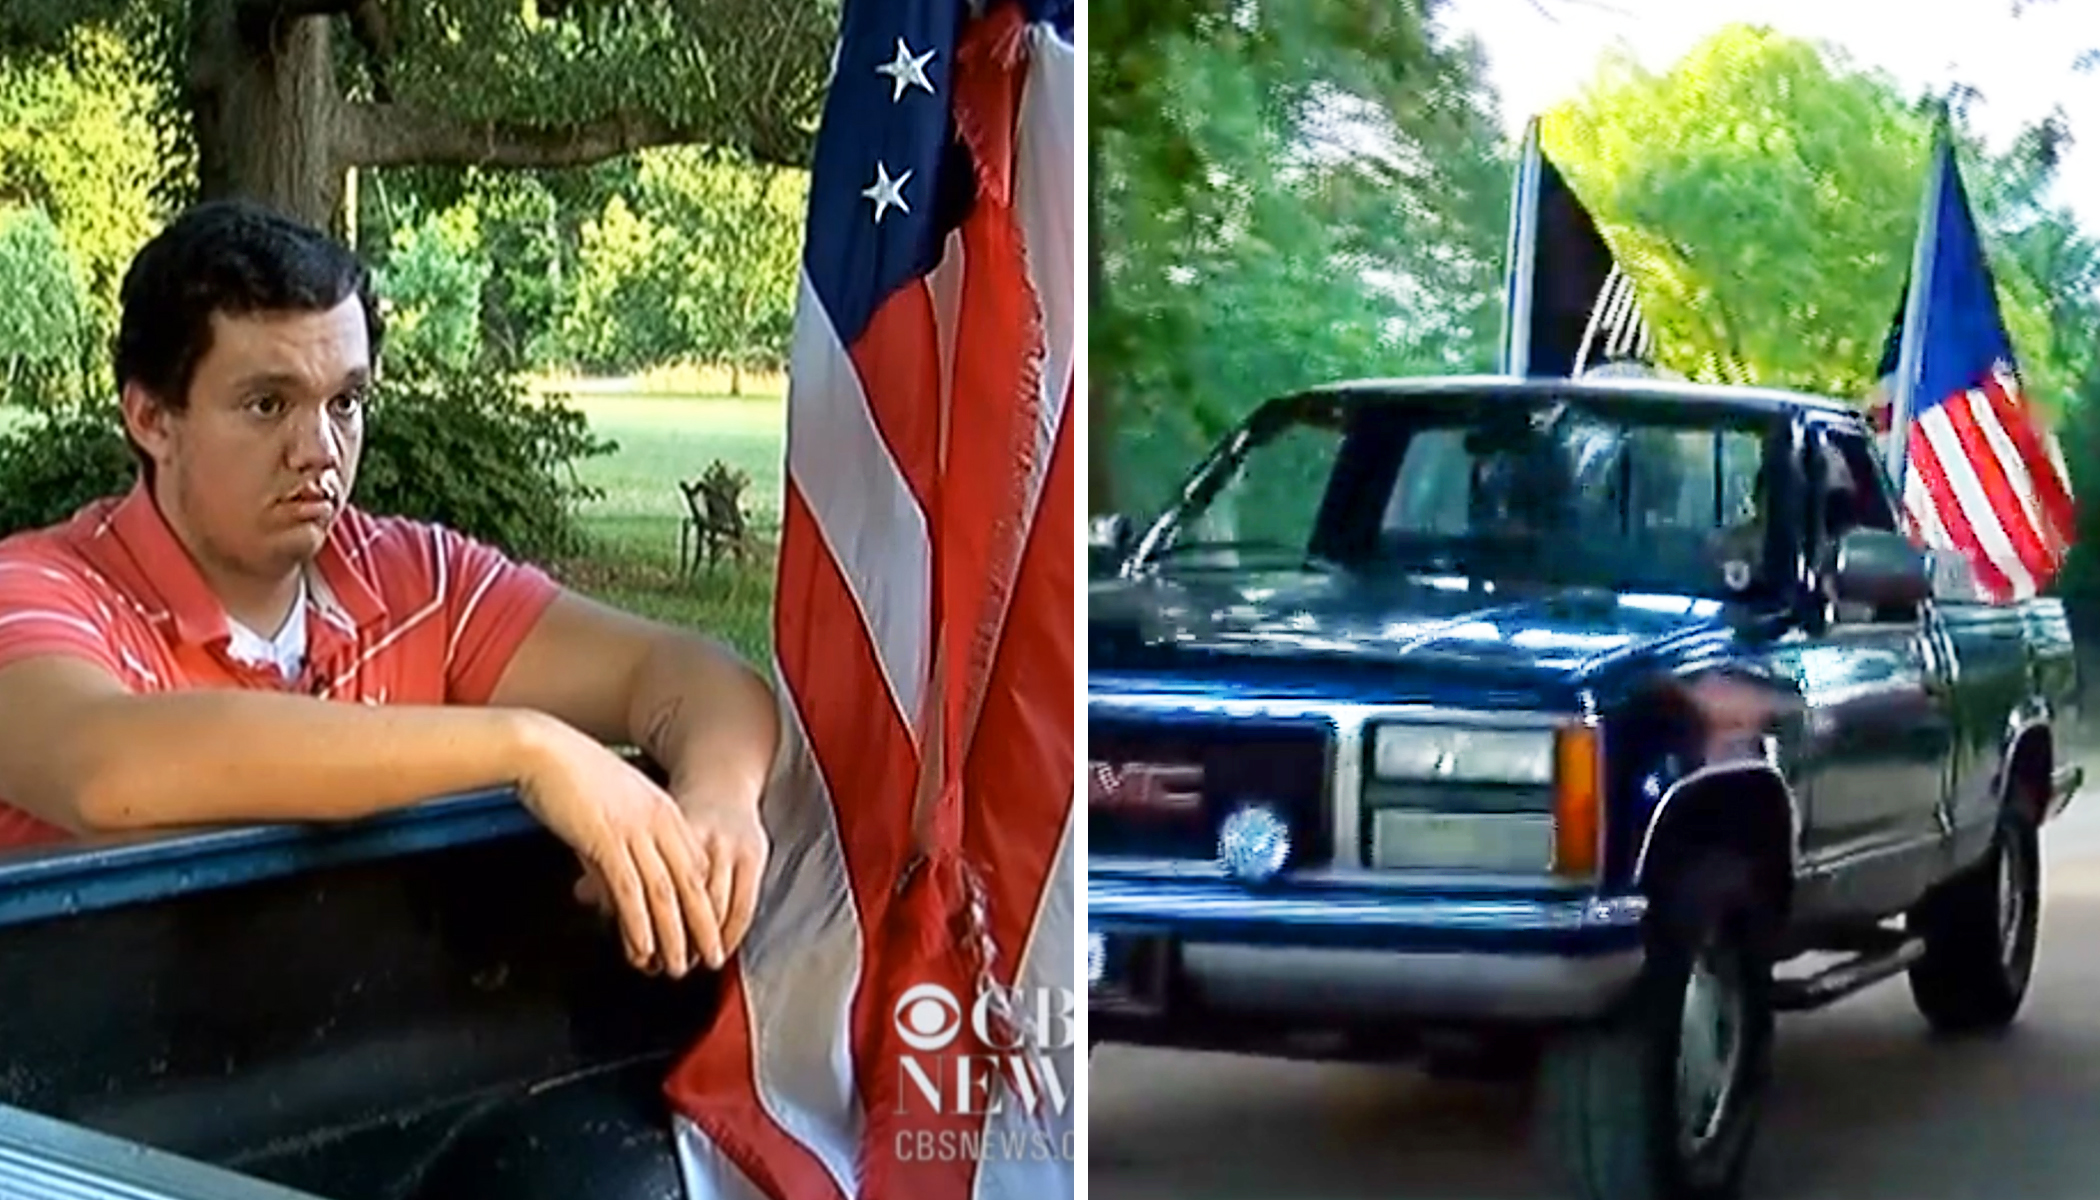 South Carolina Teen in Hot Water From School Admin for Flying American Flag on His Truck